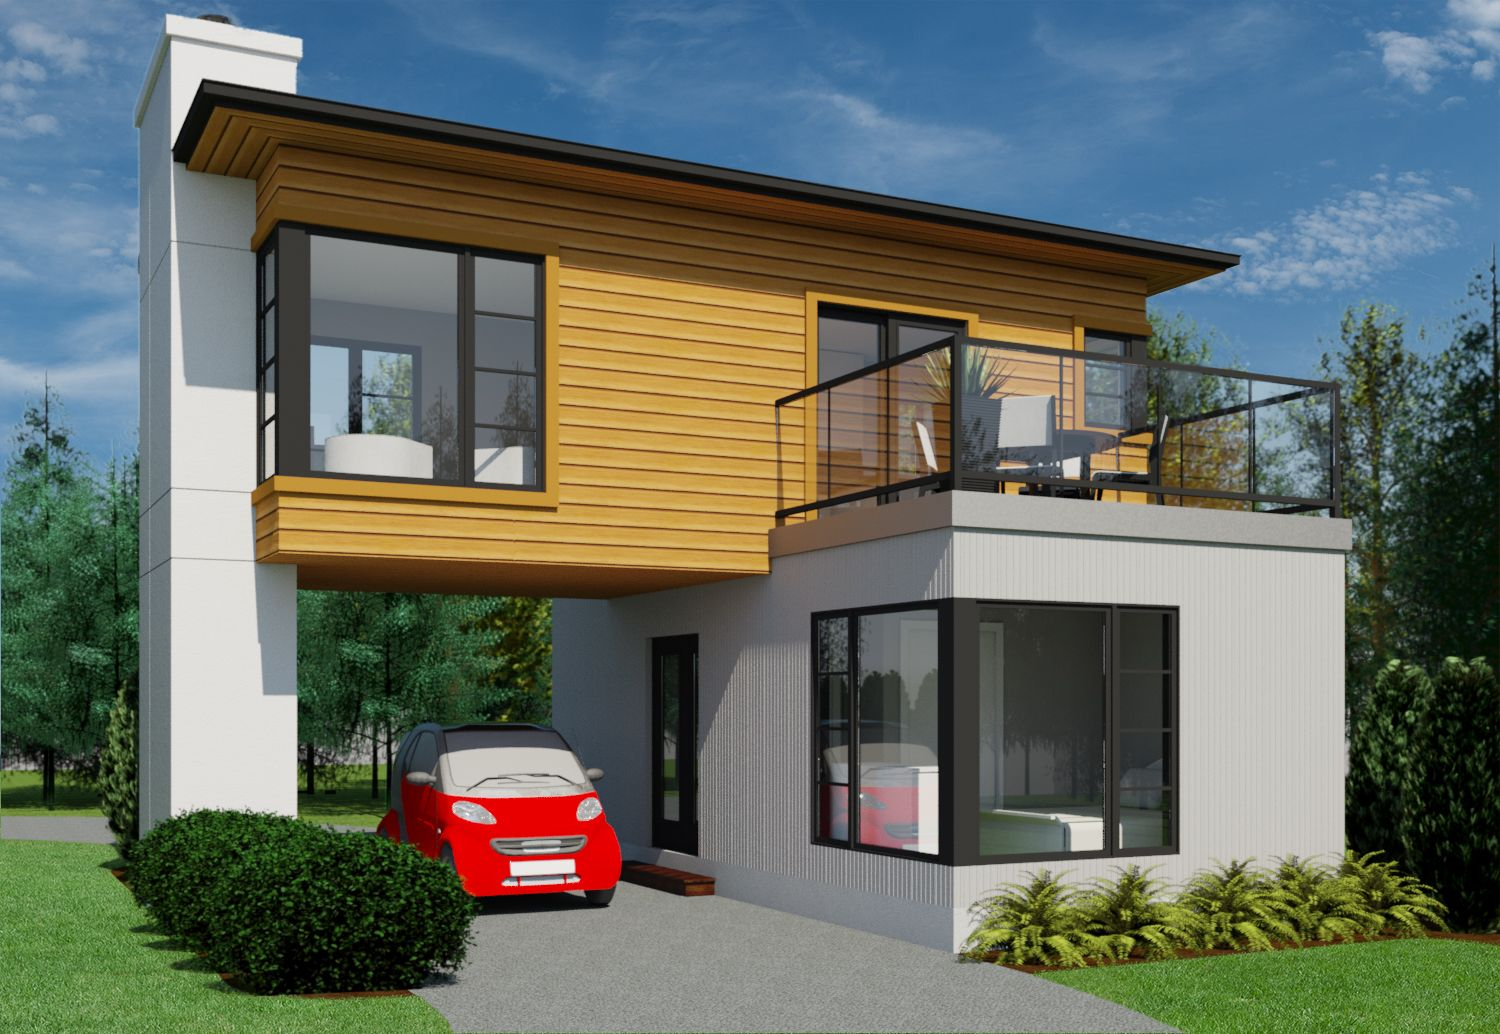 I Love The Onsuite The Laundry And The Kitchen Canadian Home Designs Custom House Plans Stock Hou Custom Home Plans House Blueprints Bungalow Floor Plans